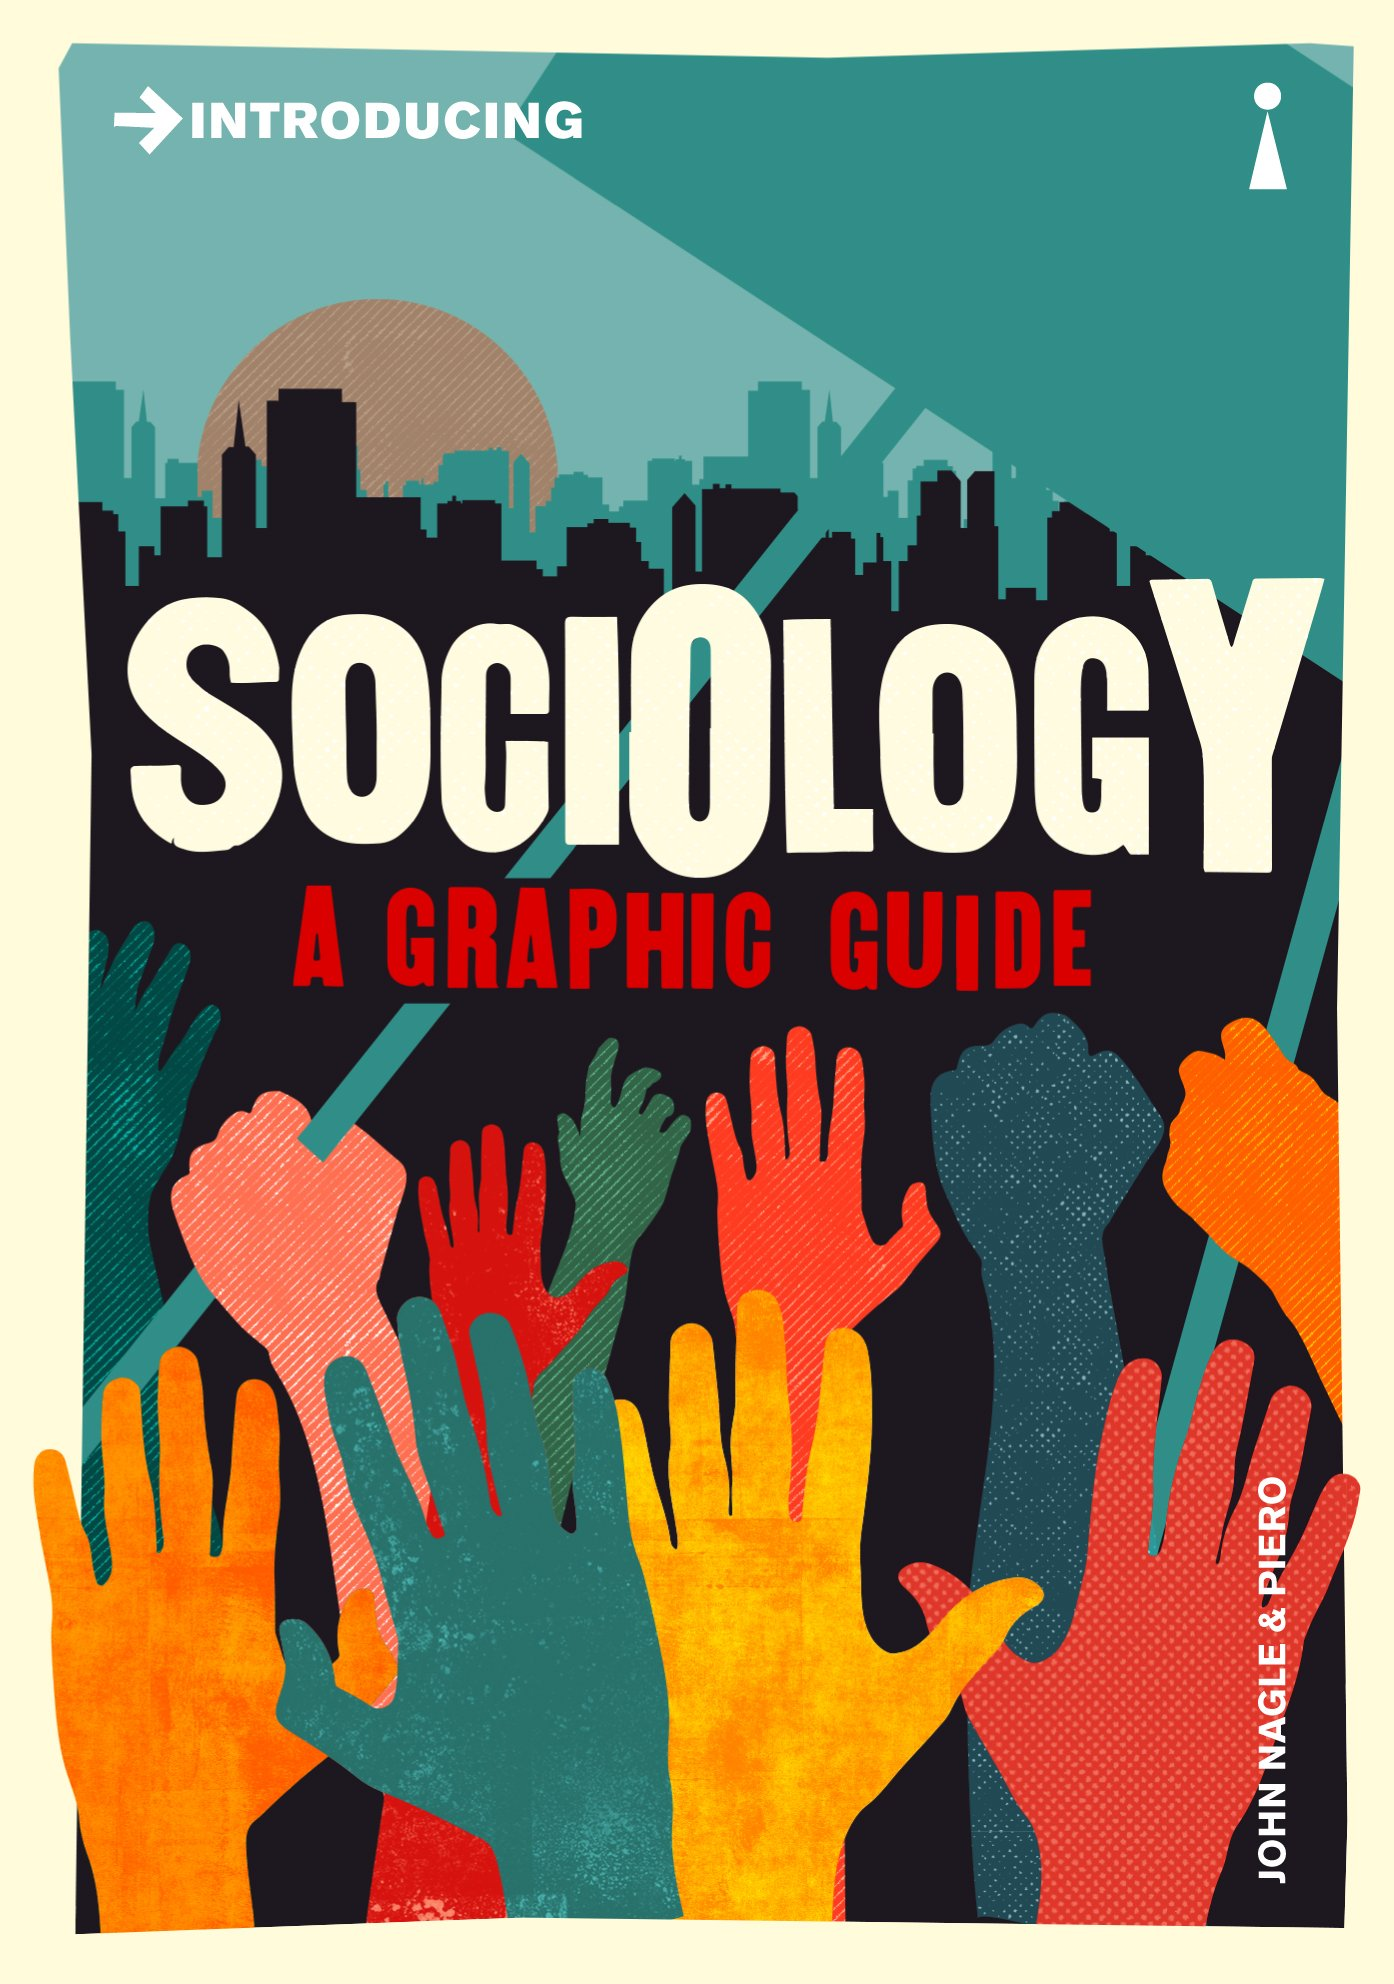 Introducing sociology a graphic guide introducing graphic guides introducing sociology a graphic guide introducing graphic guides john nagle piero 9781785780738 amazon books fandeluxe Gallery